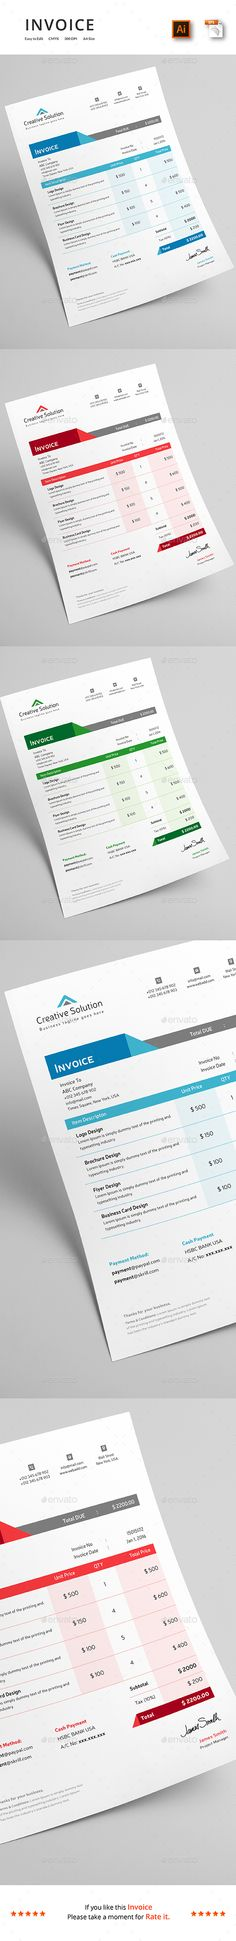 Invoice Bundle  In  Ai Illustrator Proposal Templates And